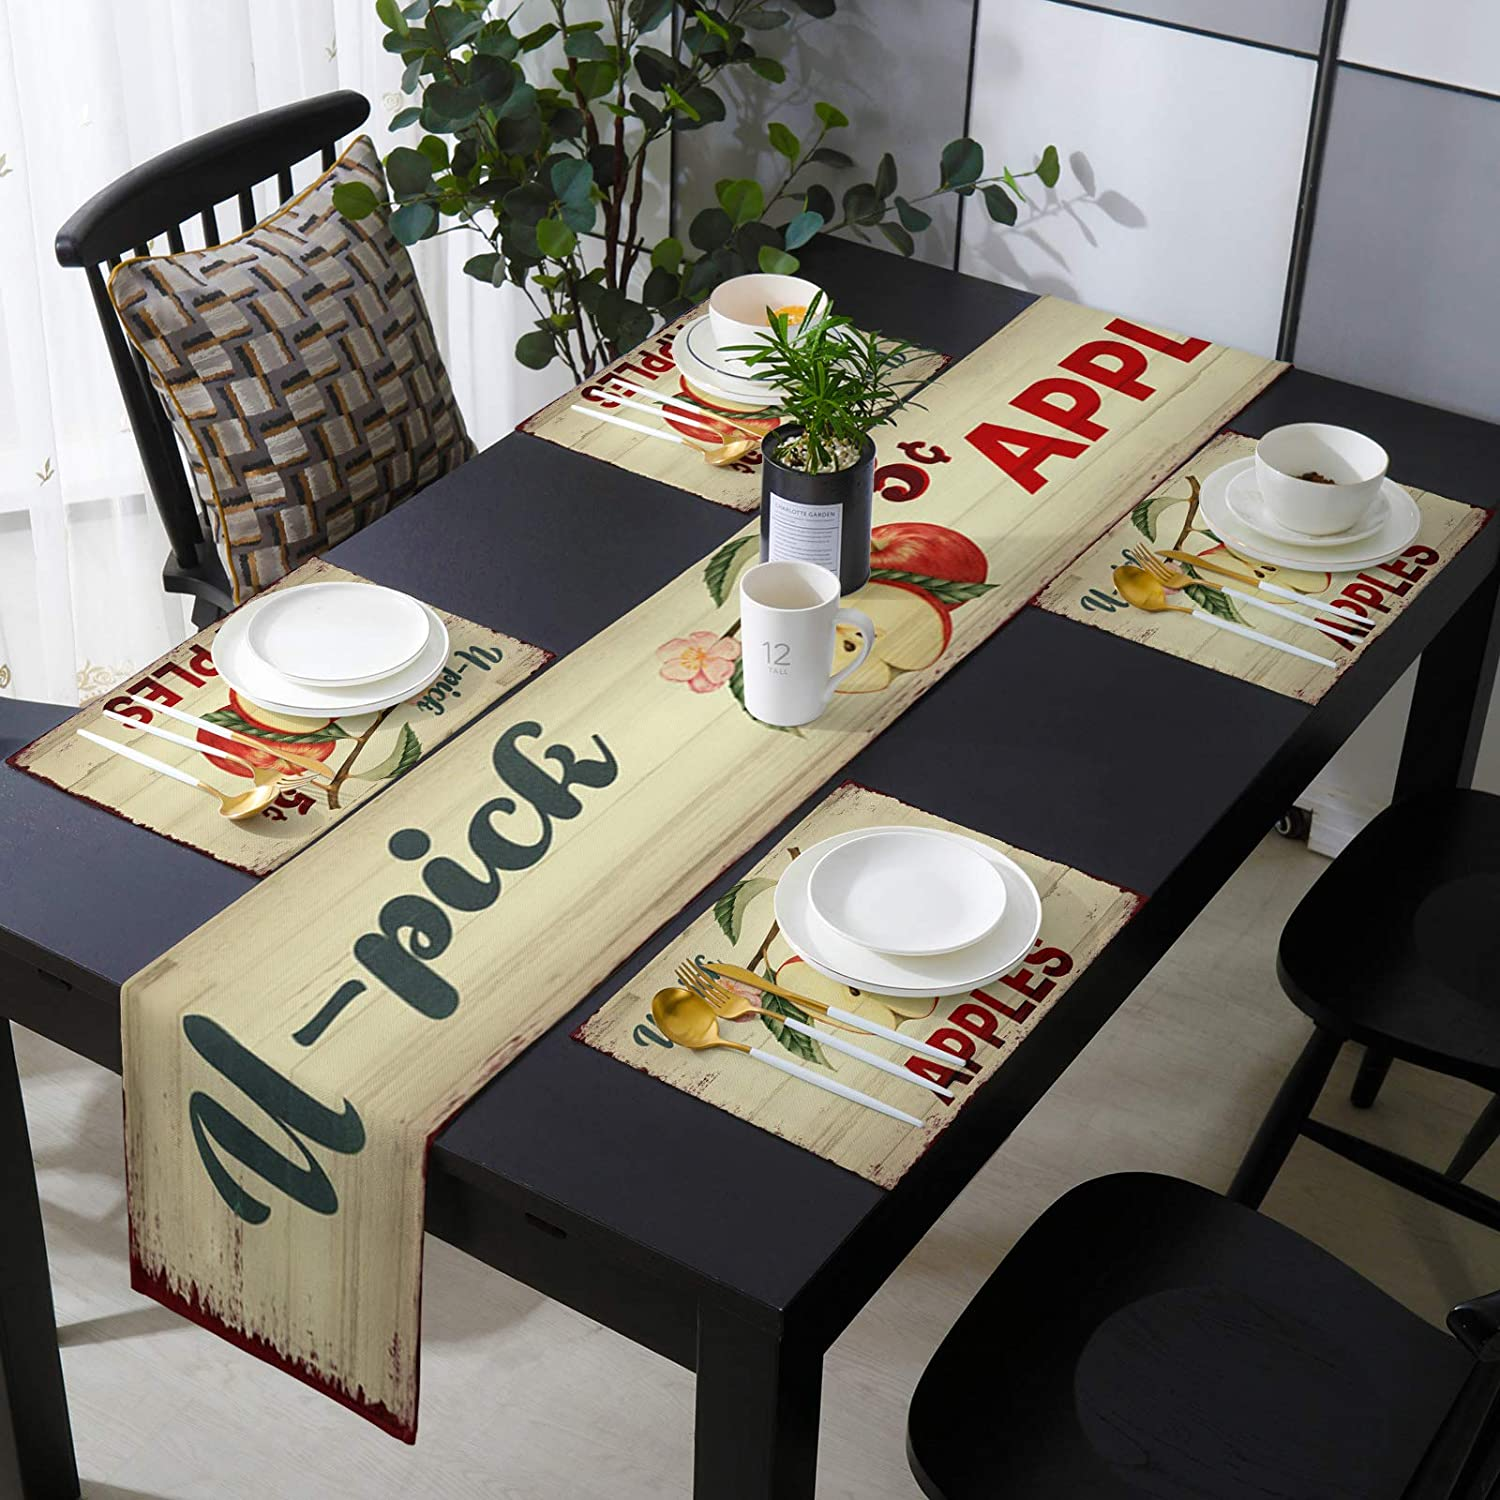 OneHoney Countryside 爆売りセール開催中 Red Apples Table and Set Placemats o Runner 大放出セール